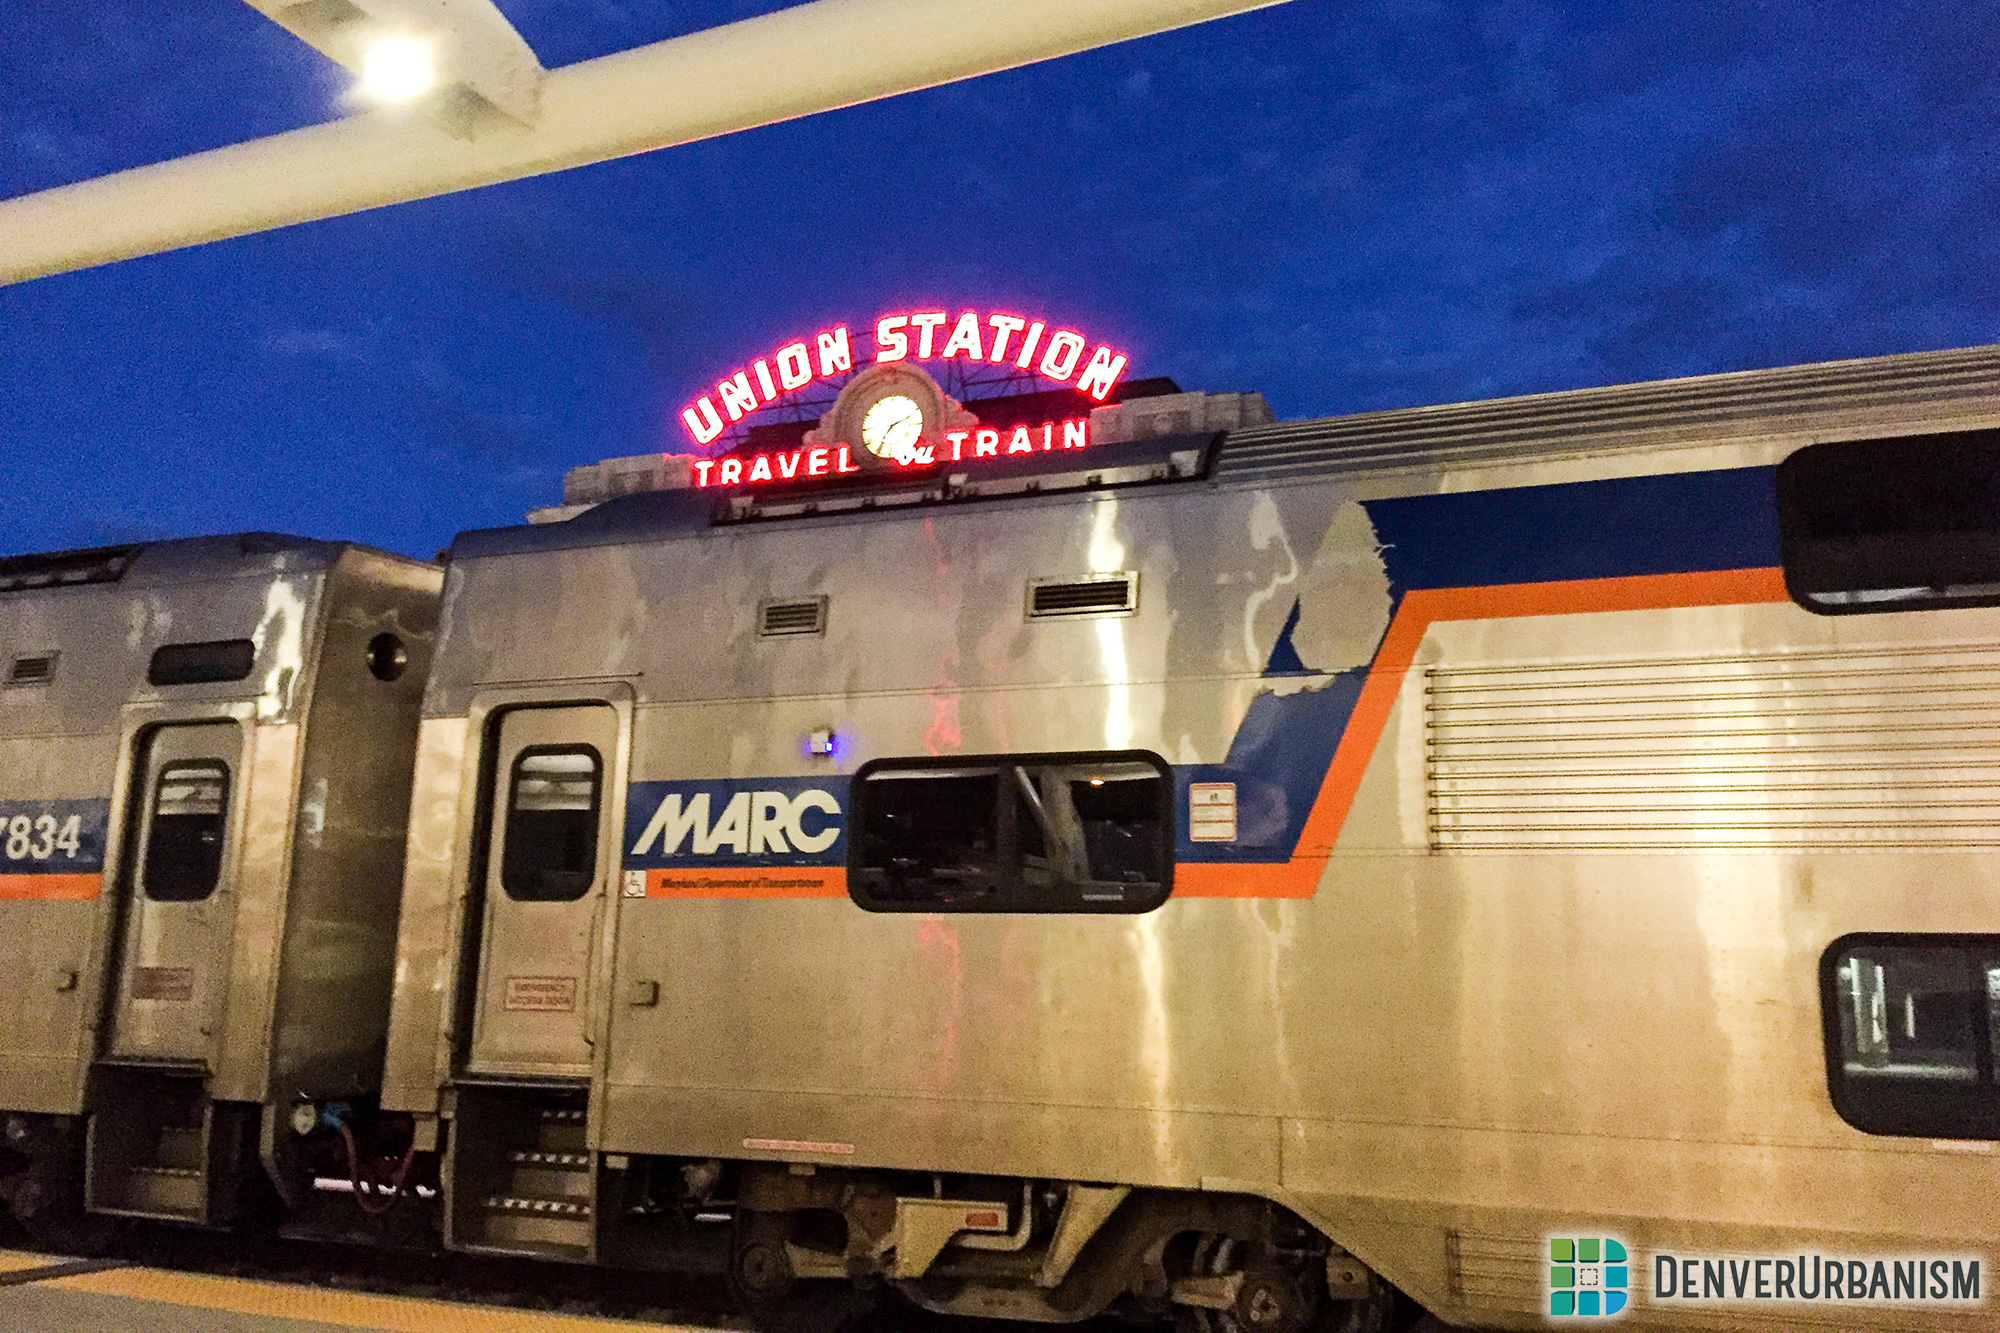 Why Washington, DC's Commuter Train Was Parked at Denver's Union Station